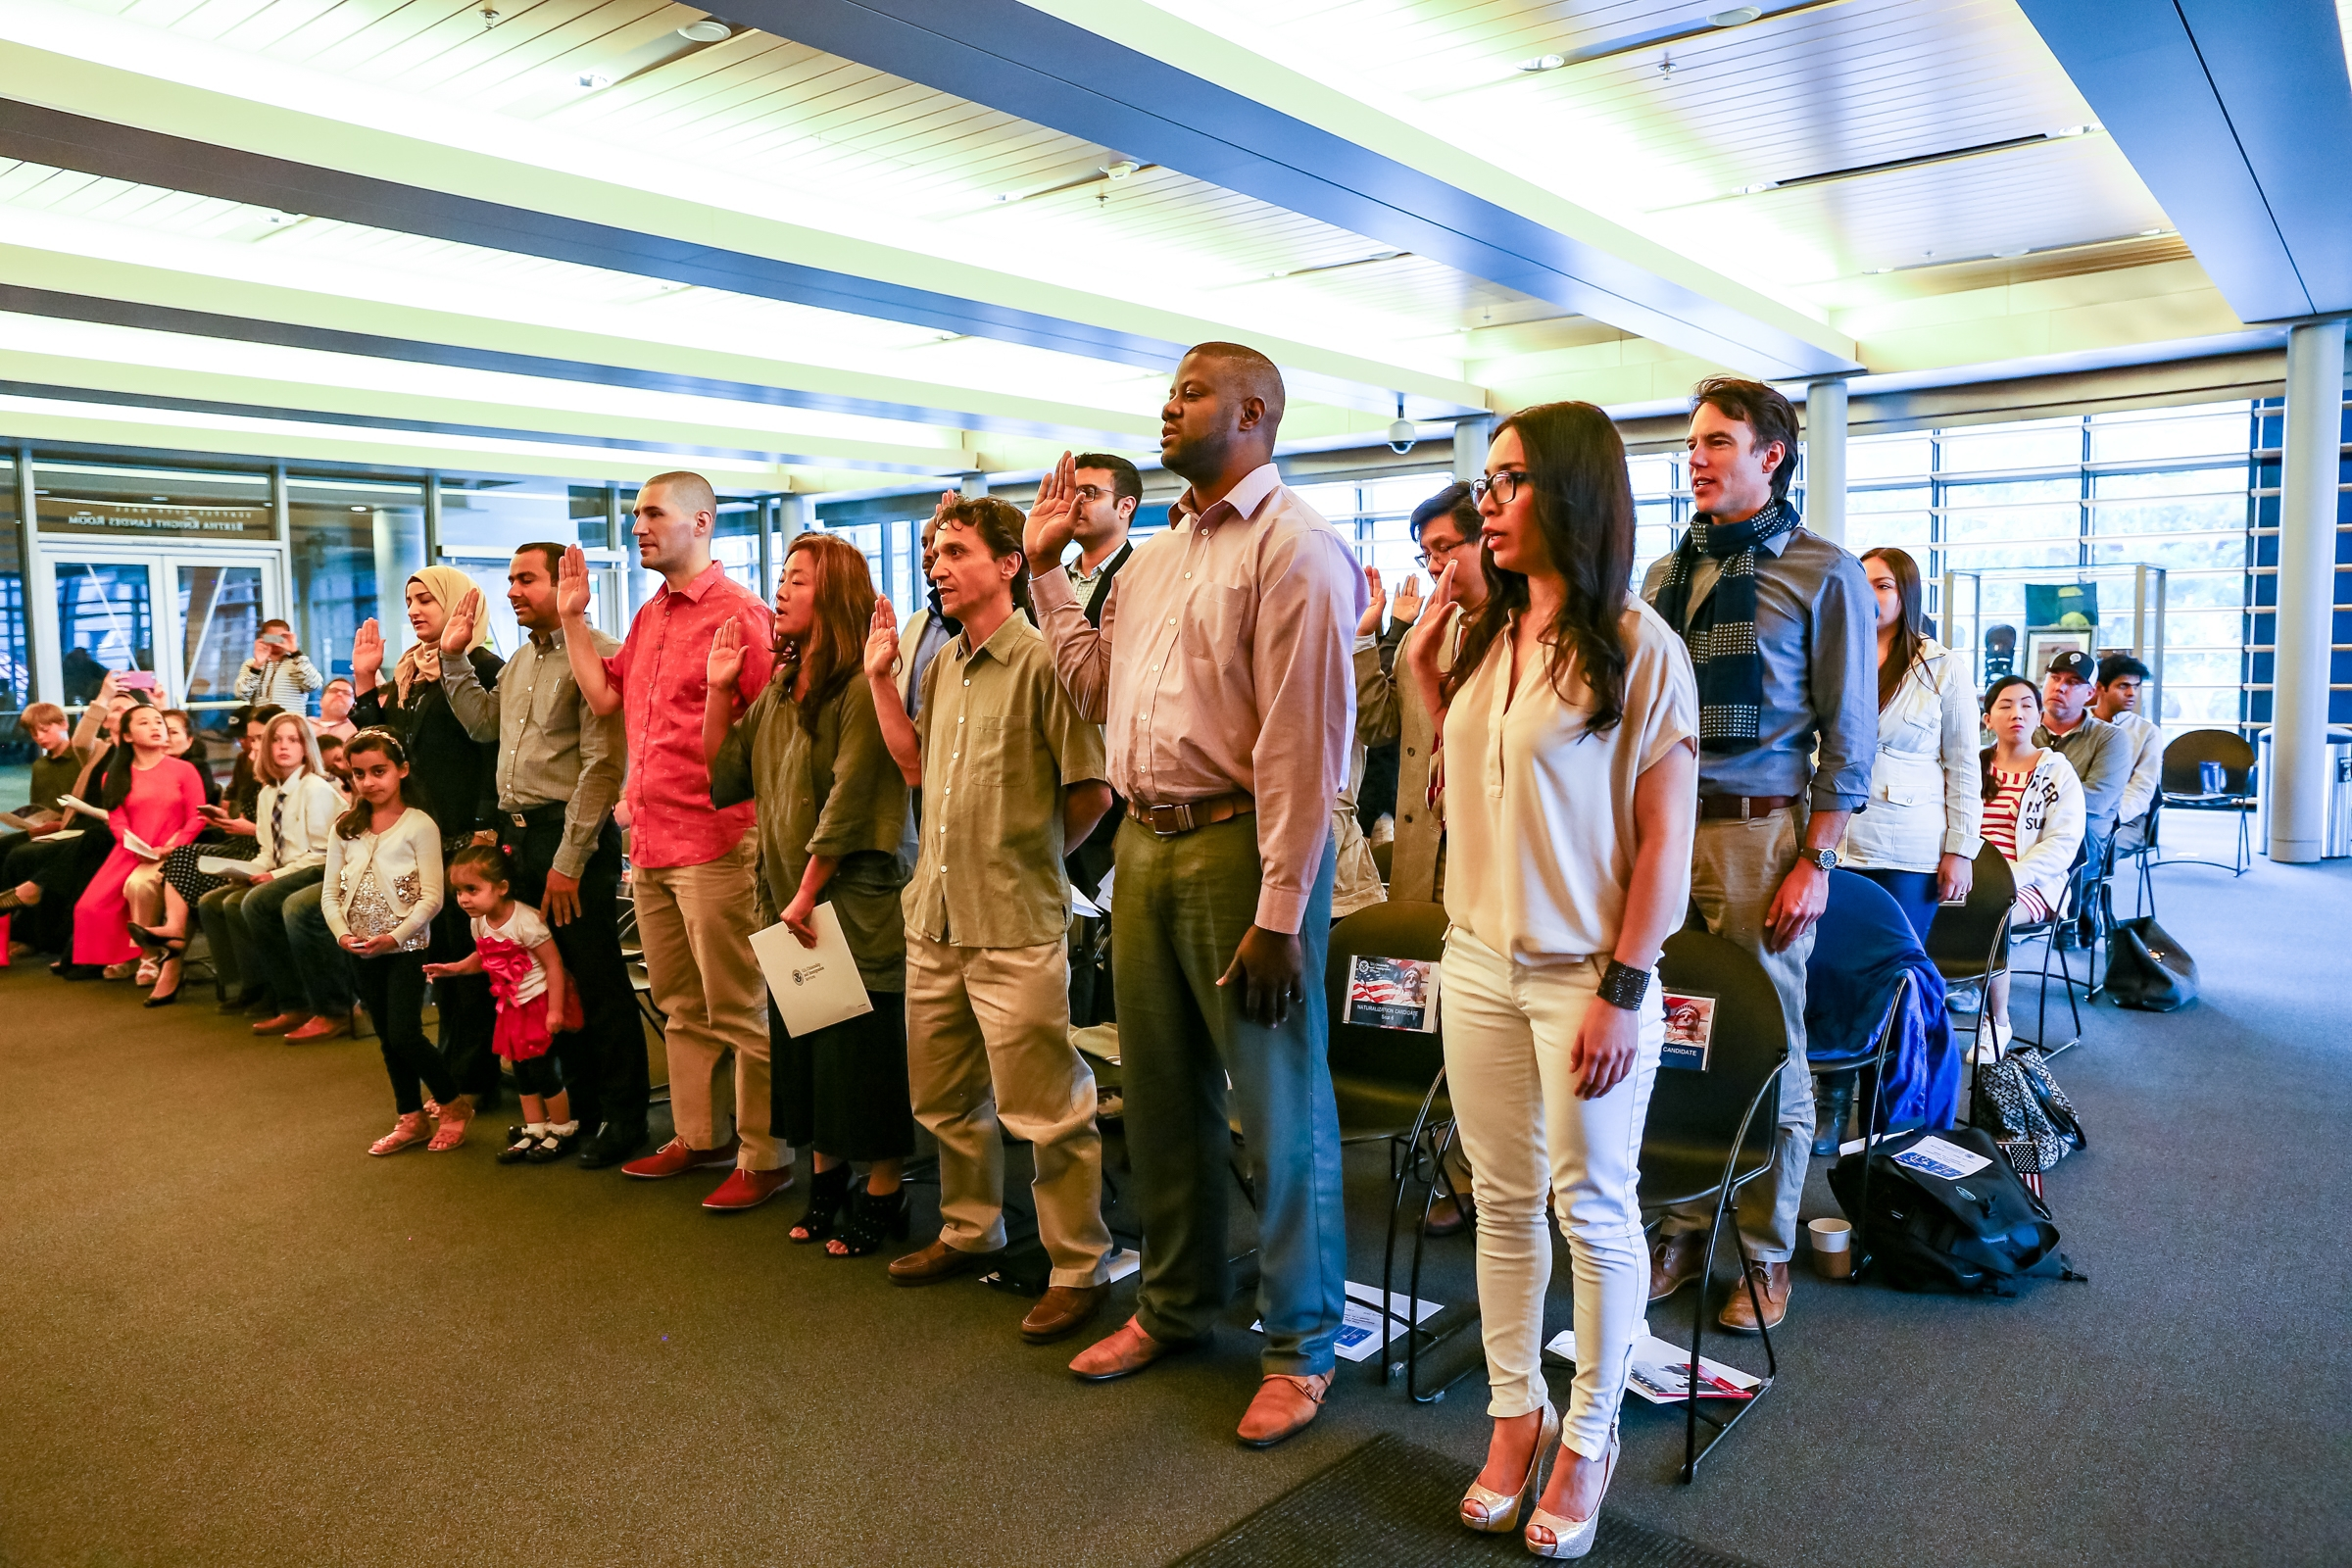 Seattle's Office of Immigrant and Refugee Affairs' (OIRA) New Citizen Program welcomed 19 new Americans at a Flag Day Naturalization Ceremony at Seattle City Hall. (Photo credit: Alabastro Photography)